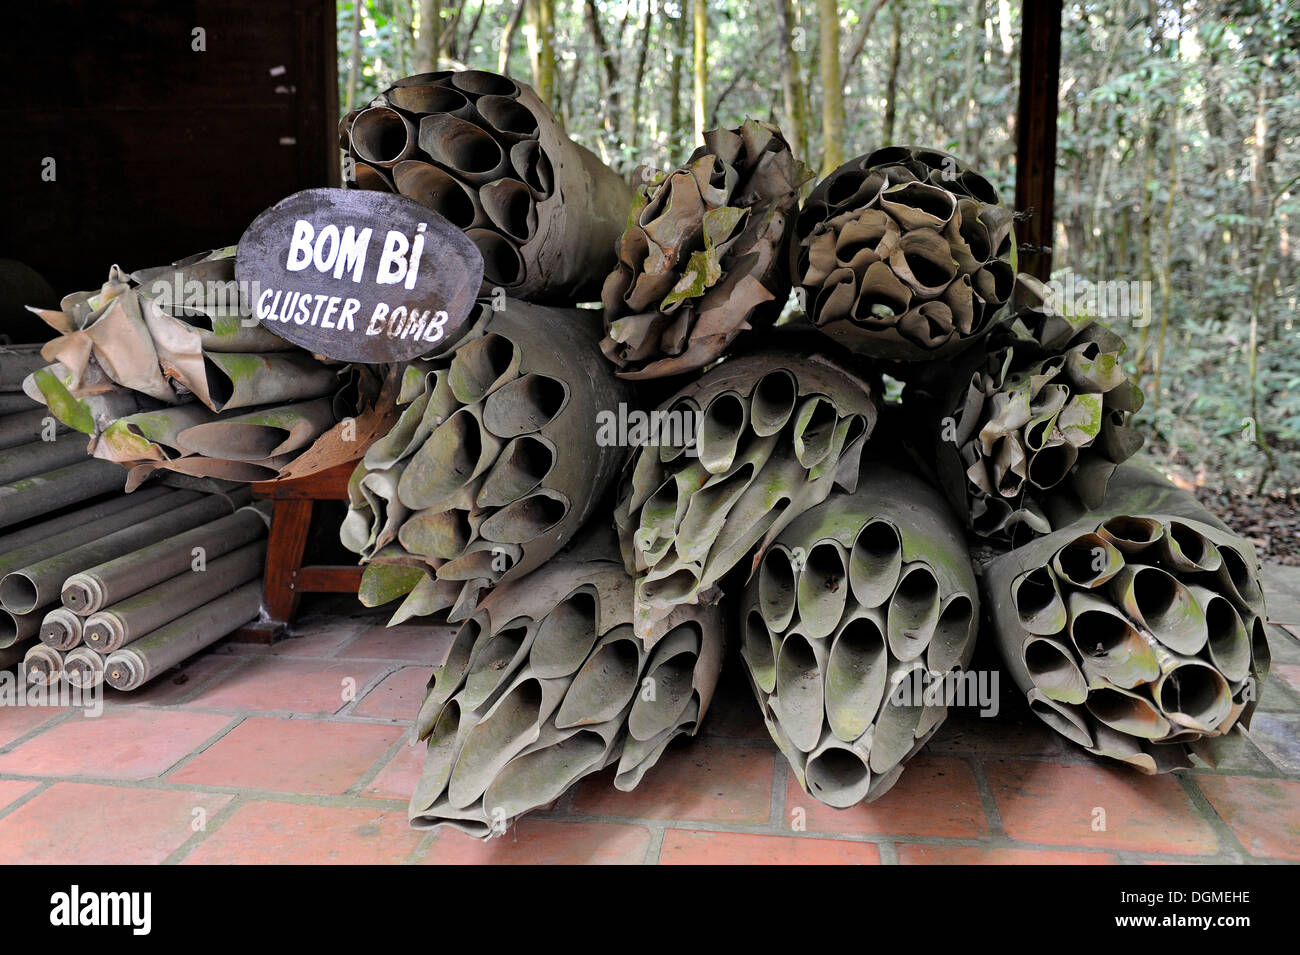 American cluster bombs from the Vietnam War in the open-air war museum in Cu Chi, South Vietnam, Vietnam, Southeast Asia, Asia - Stock Image